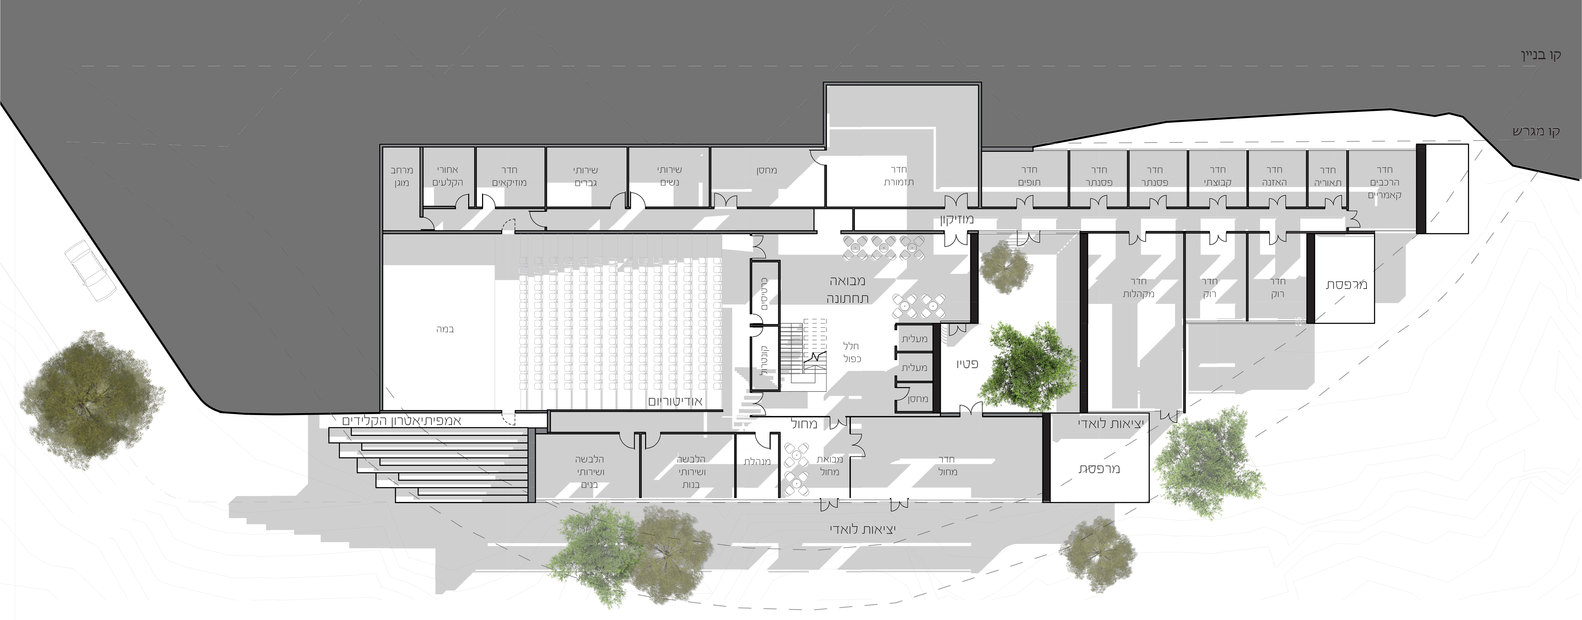 Architecture Design Sheets gallery of neuman hayner architects designs conservatory in israel